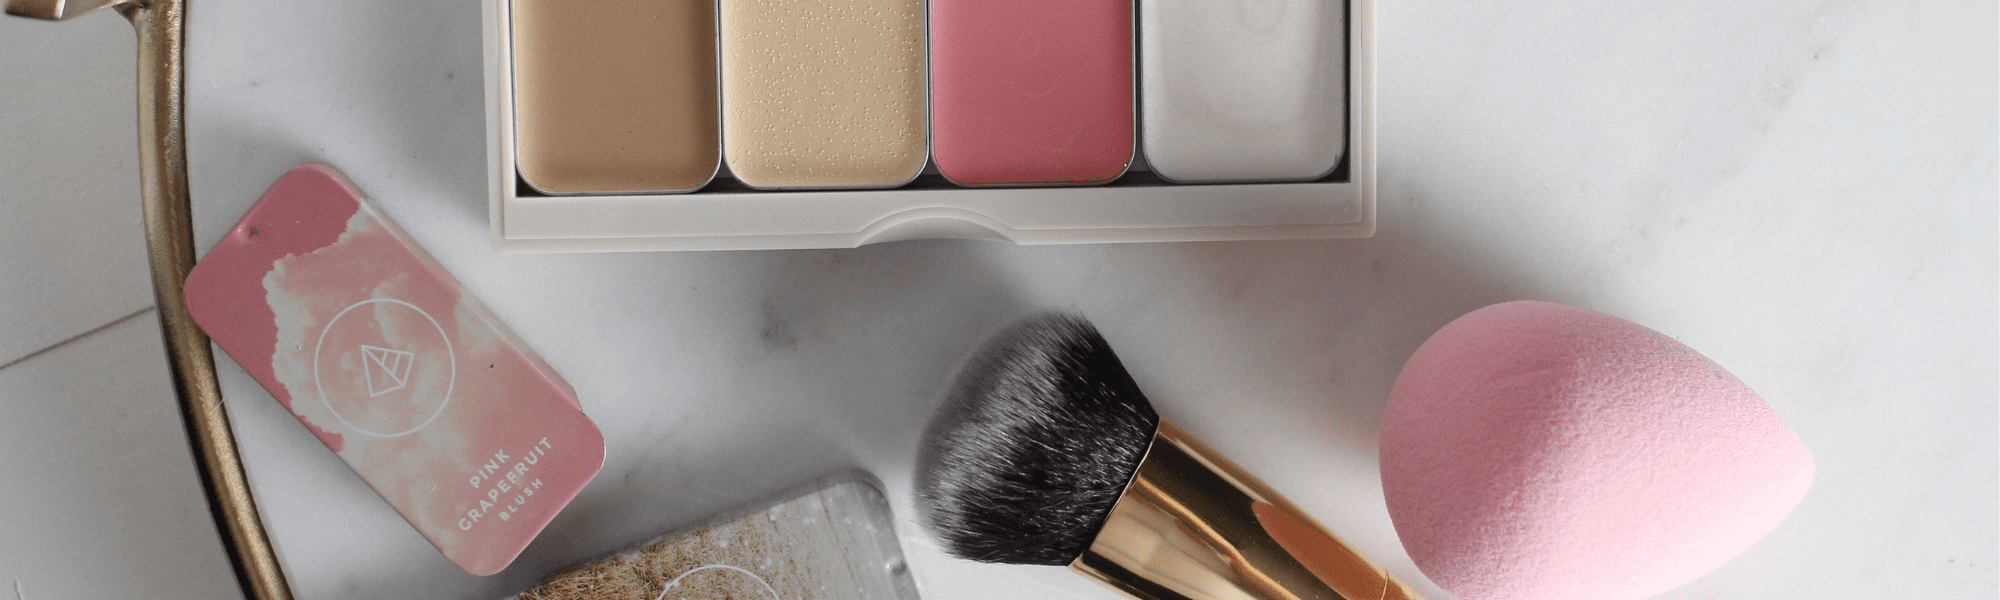 My ten minute busy mom makeup routine using Maskcara and Mary Kay products from Tabitha Dumas Image Consultat featuring Jennifer Hoffman Maskcara and Amy Brines Mary Kay